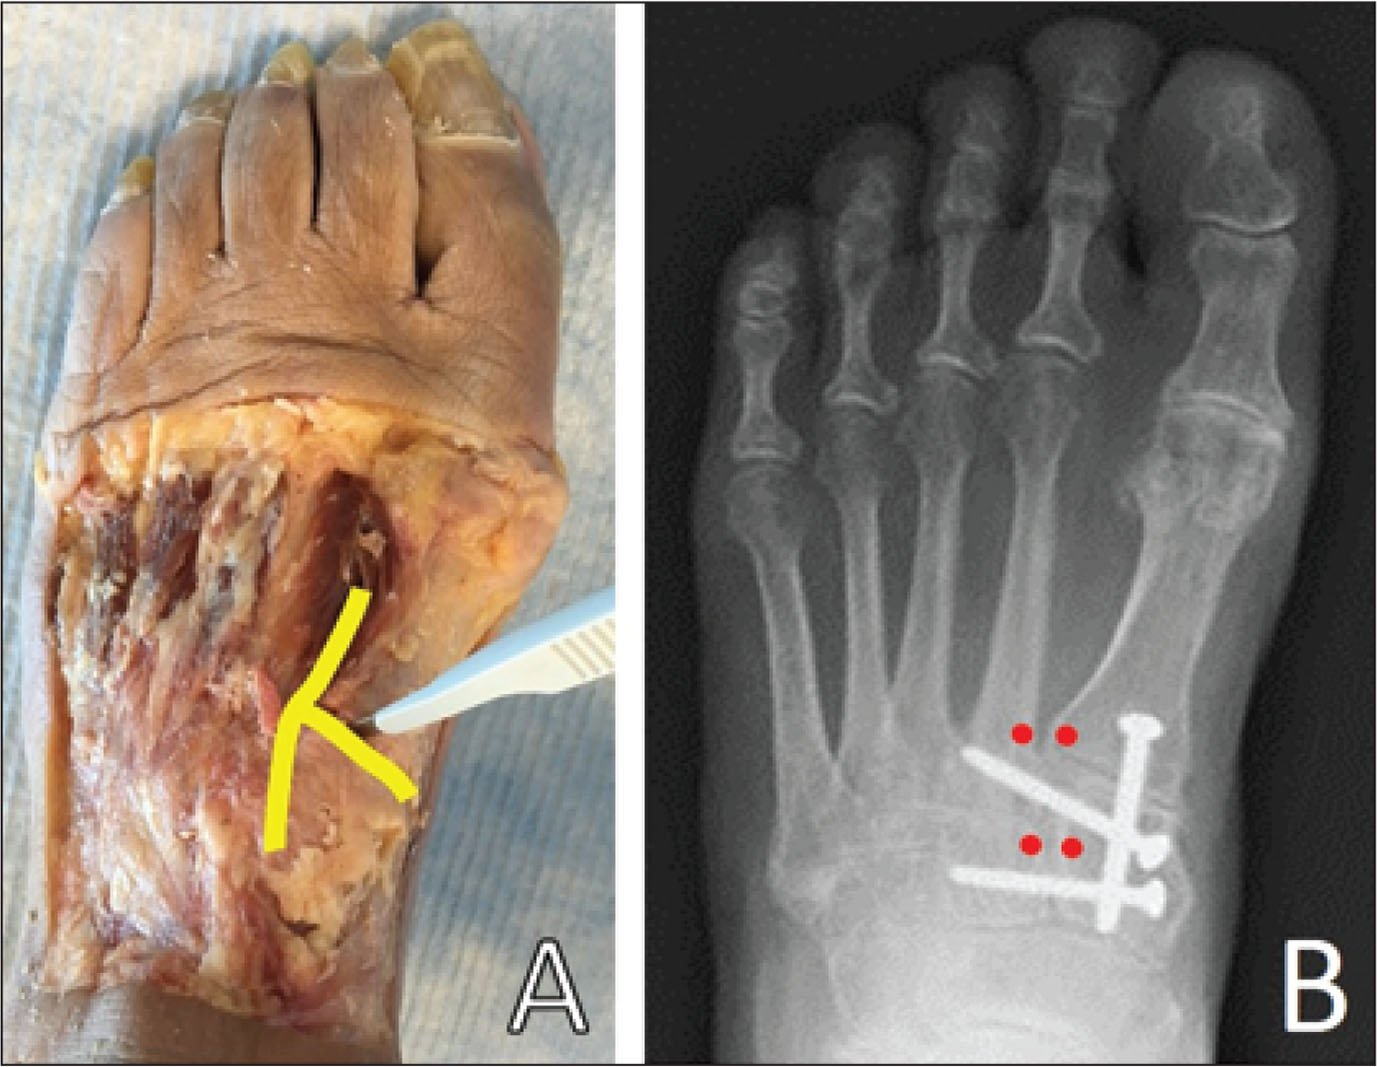 Photograph of a dissected midfoot. The yellow line represents the path taken with a scalpel to create the complex Lisfranc injury (A). A proximal/distal radiograph of a reconstructed Lisfranc injury that uses 3 fully threaded solid cortical screws. The red dots represent the locations of virtual landmarks for the determination of diastasis between the metatarsal and cuneiform bones at the base of the first metatarsal, the metaphyseal flare of the second metatarsal, and the midpoint of the medial and middle cuneiforms (B).